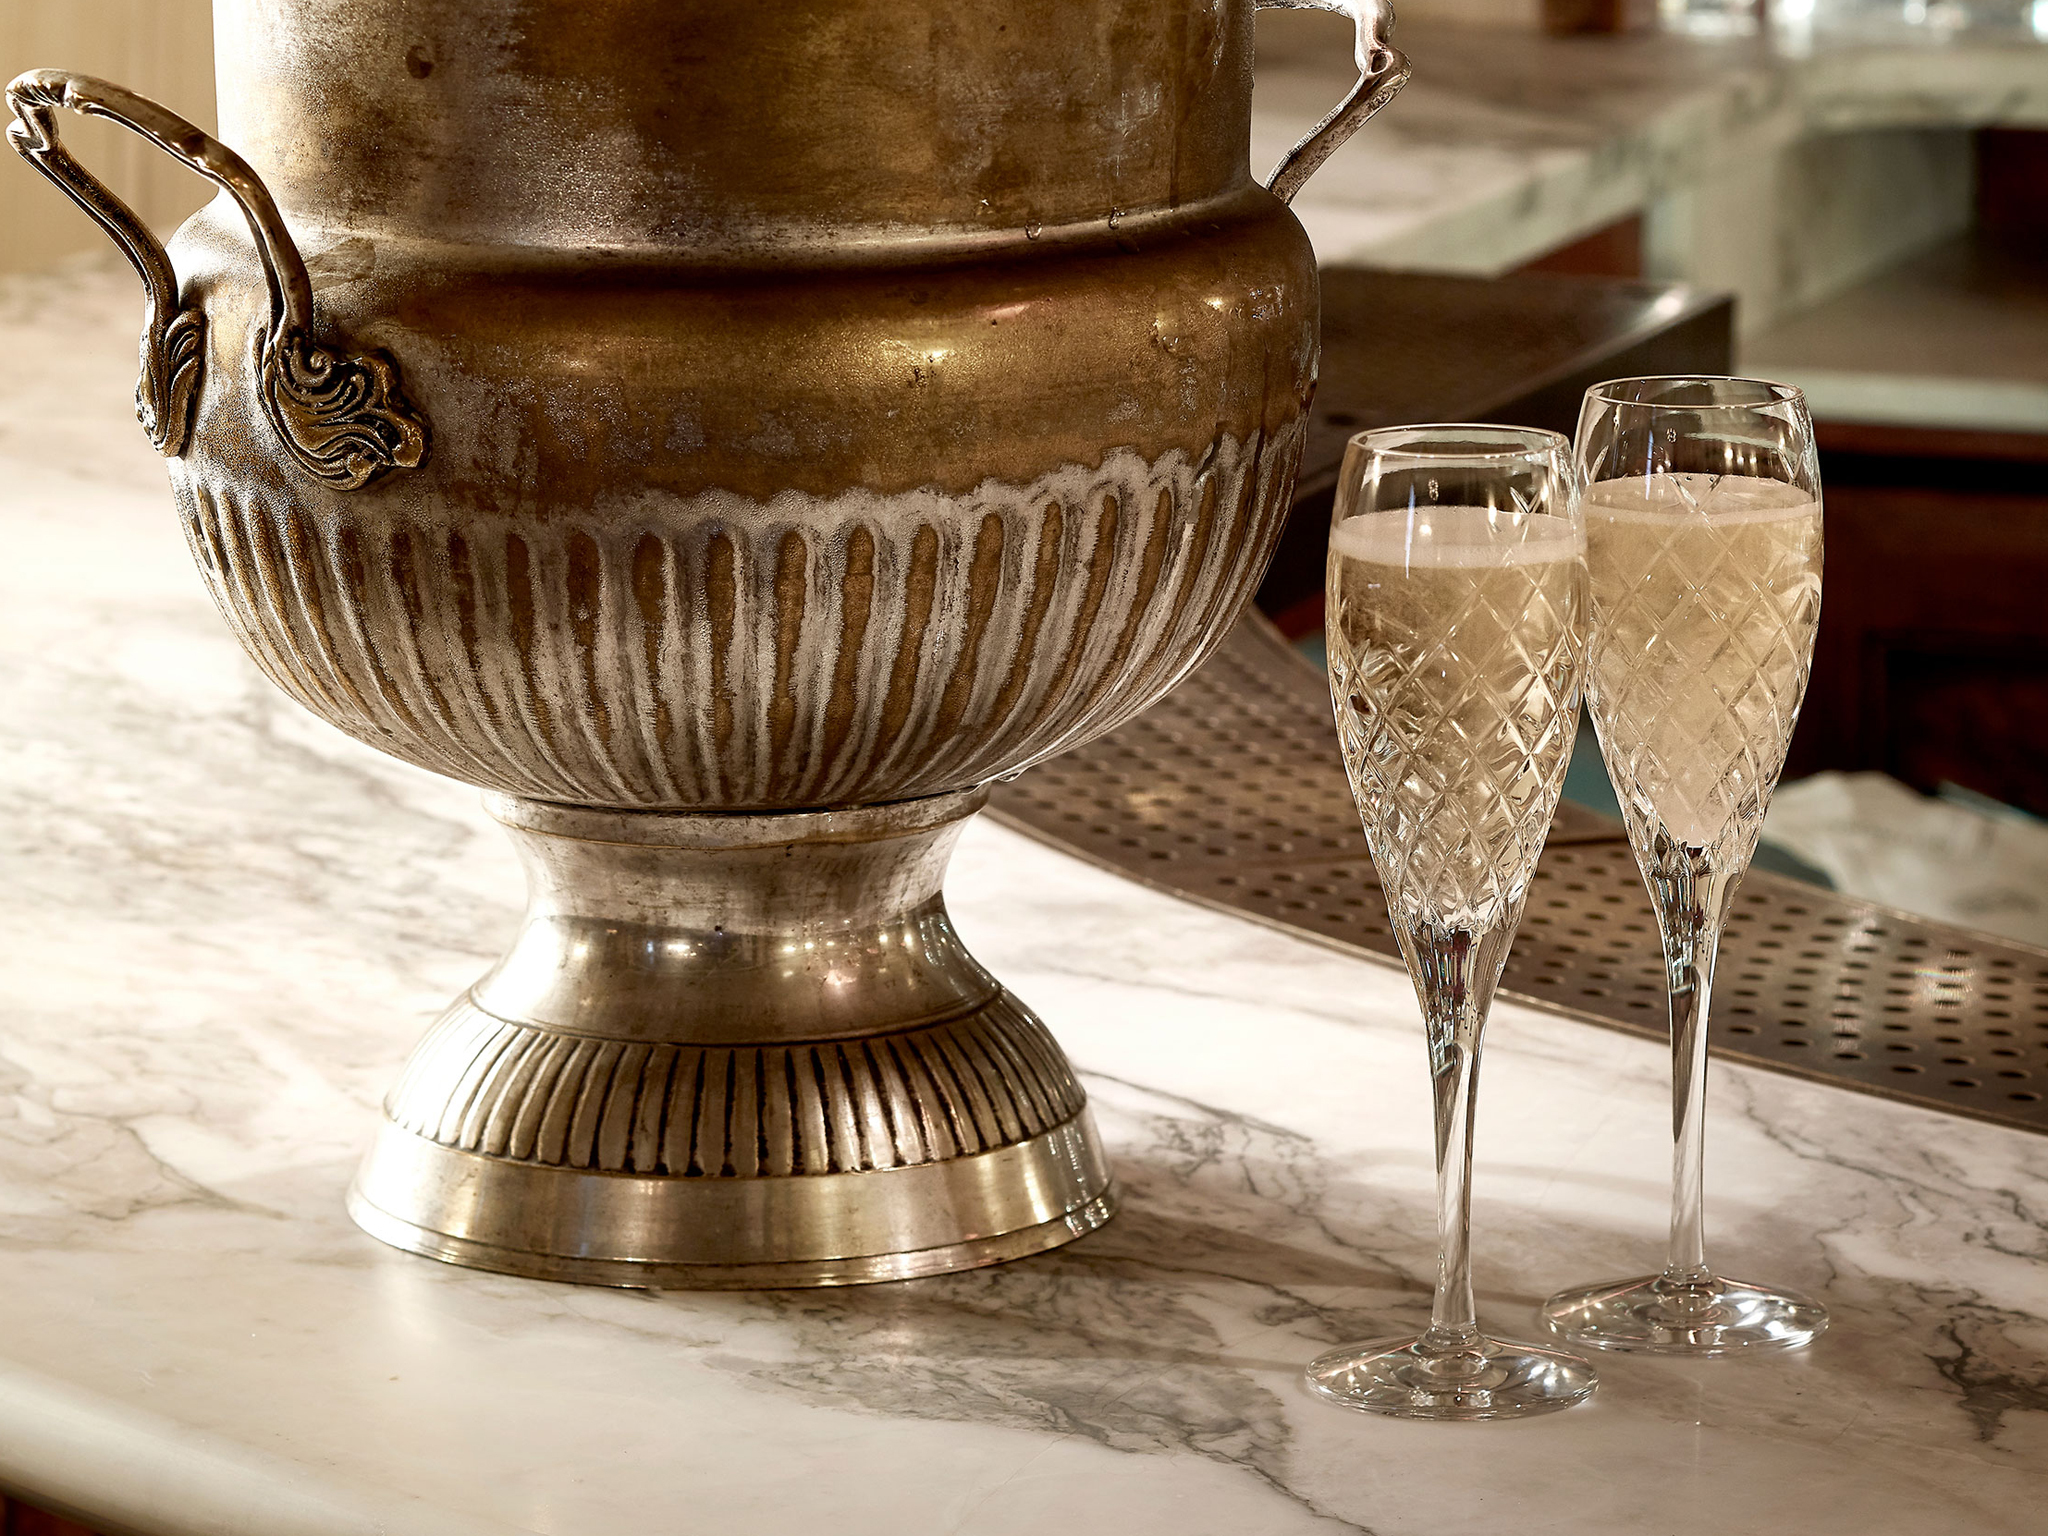 kettner's townhouse champagne bar